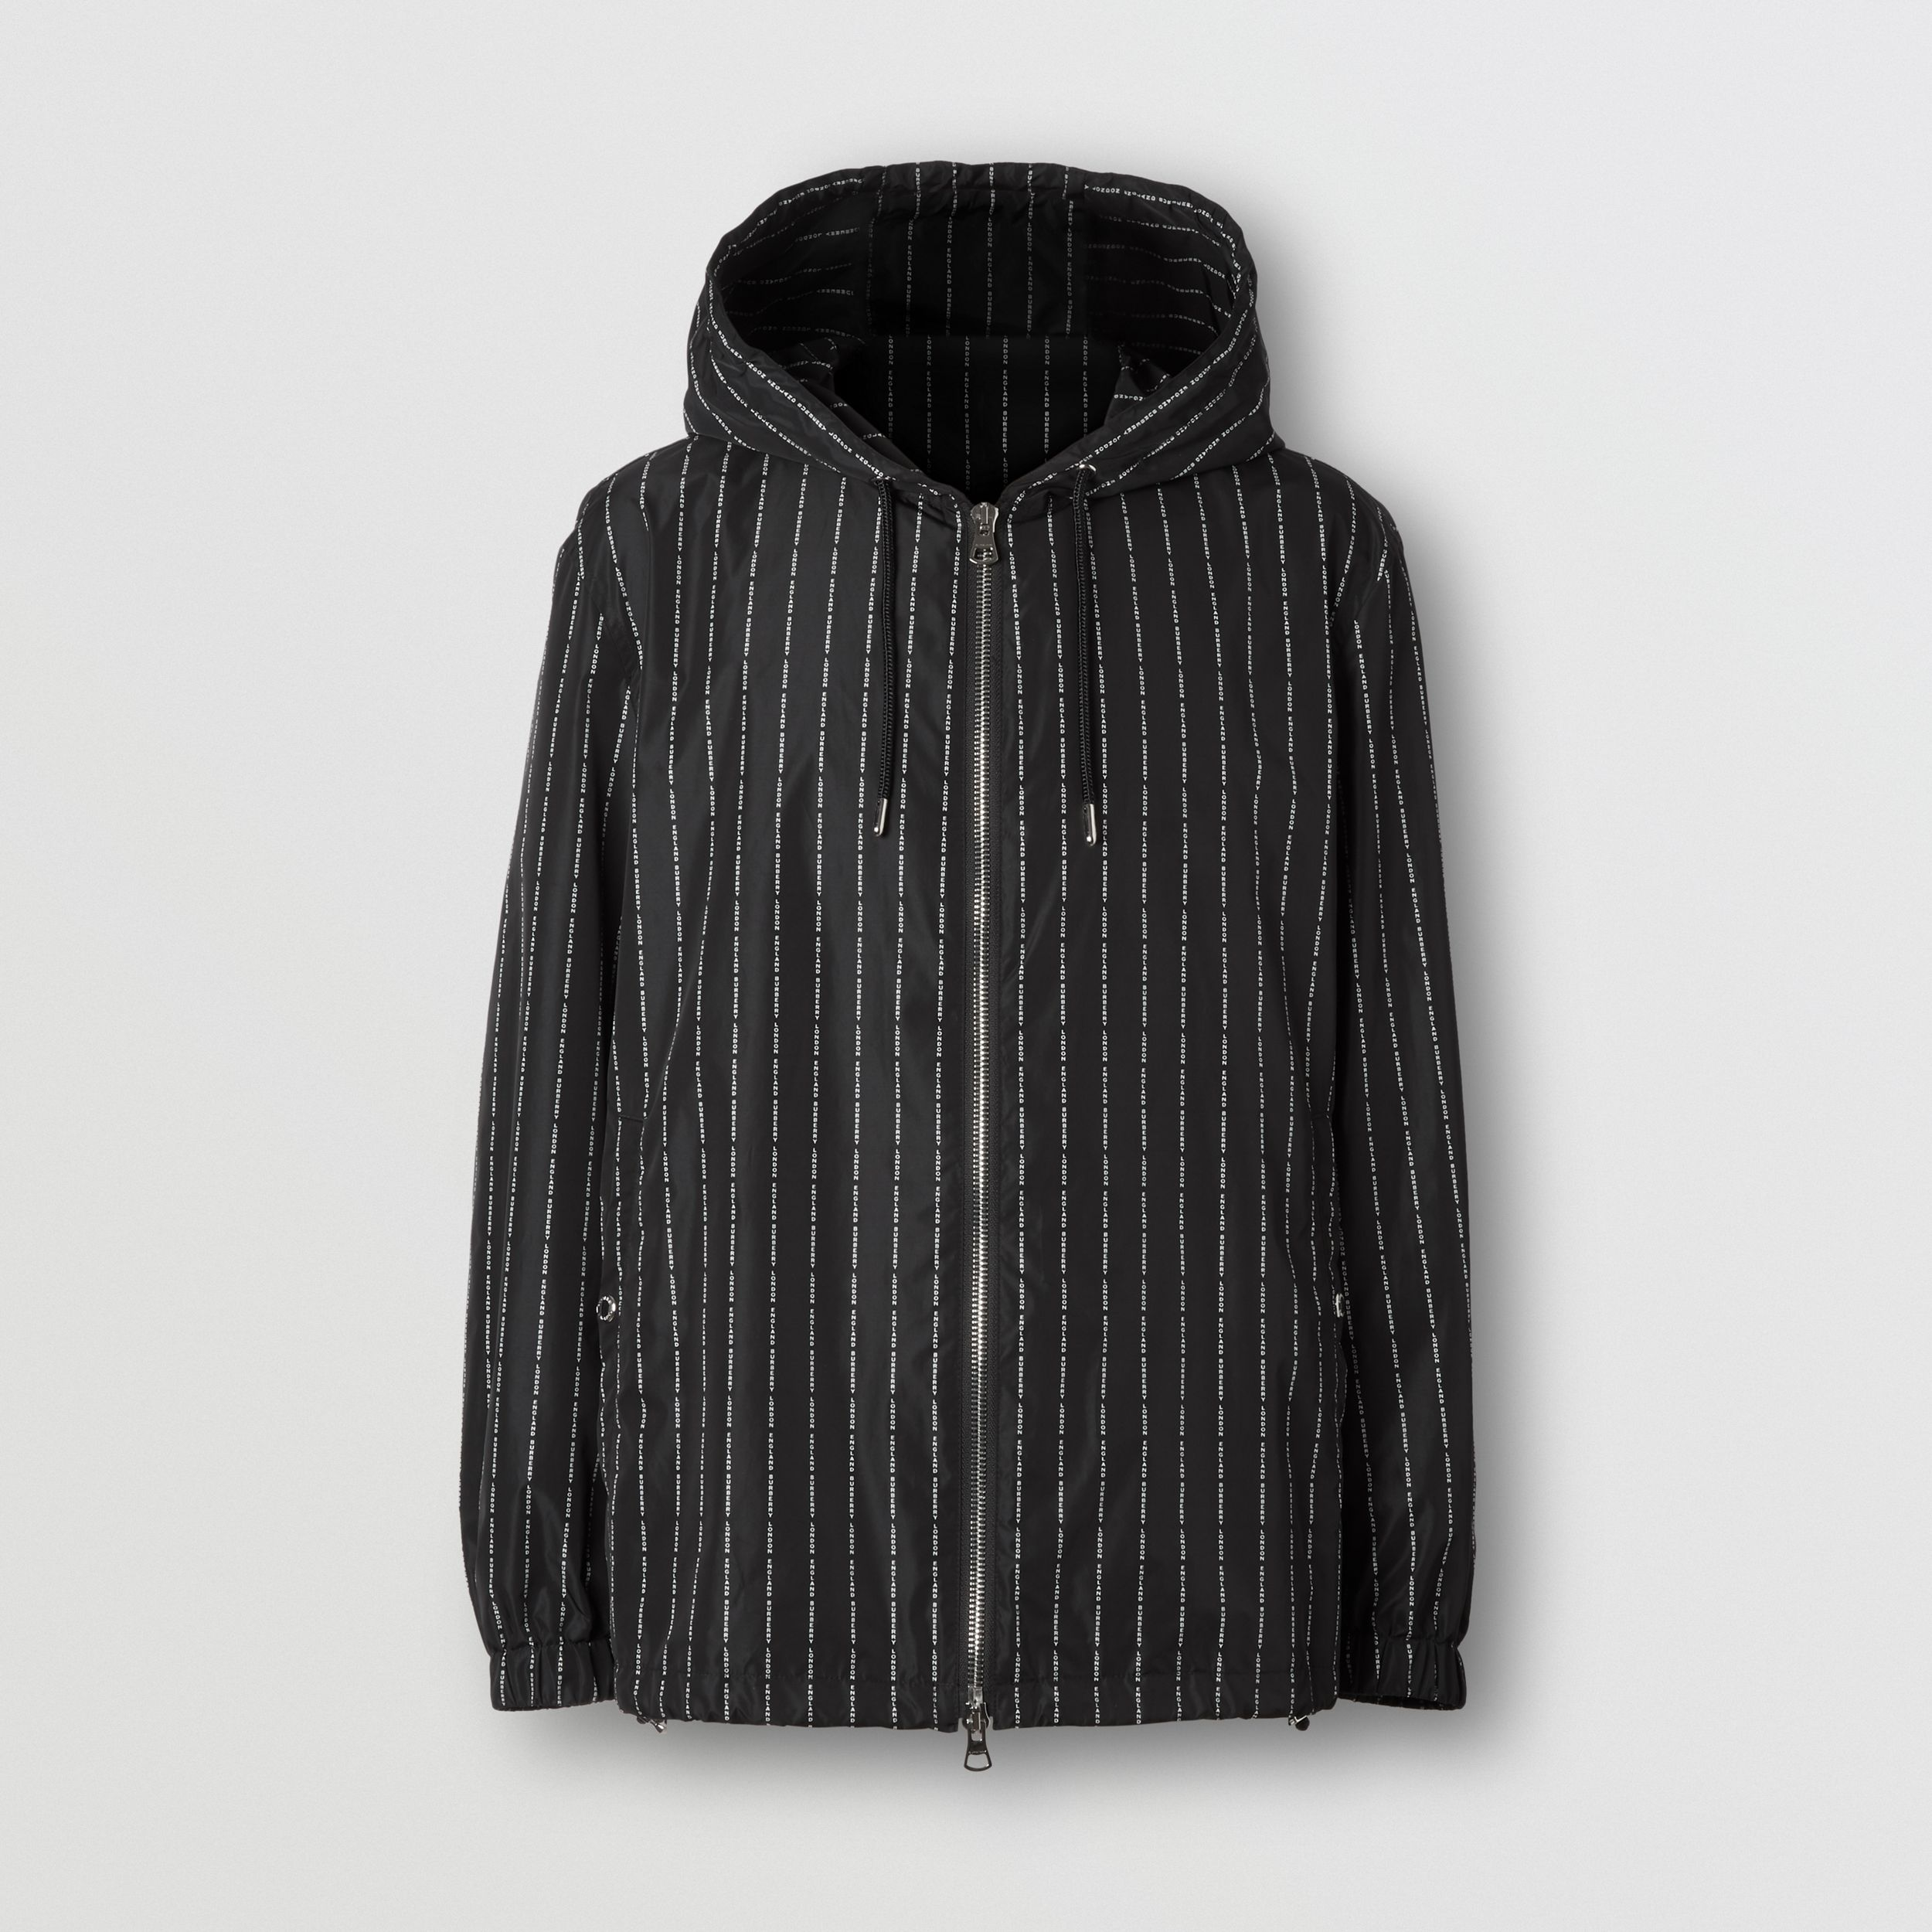 Logo Pinstripe Nylon Hooded Jacket in Black - Men | Burberry - 4